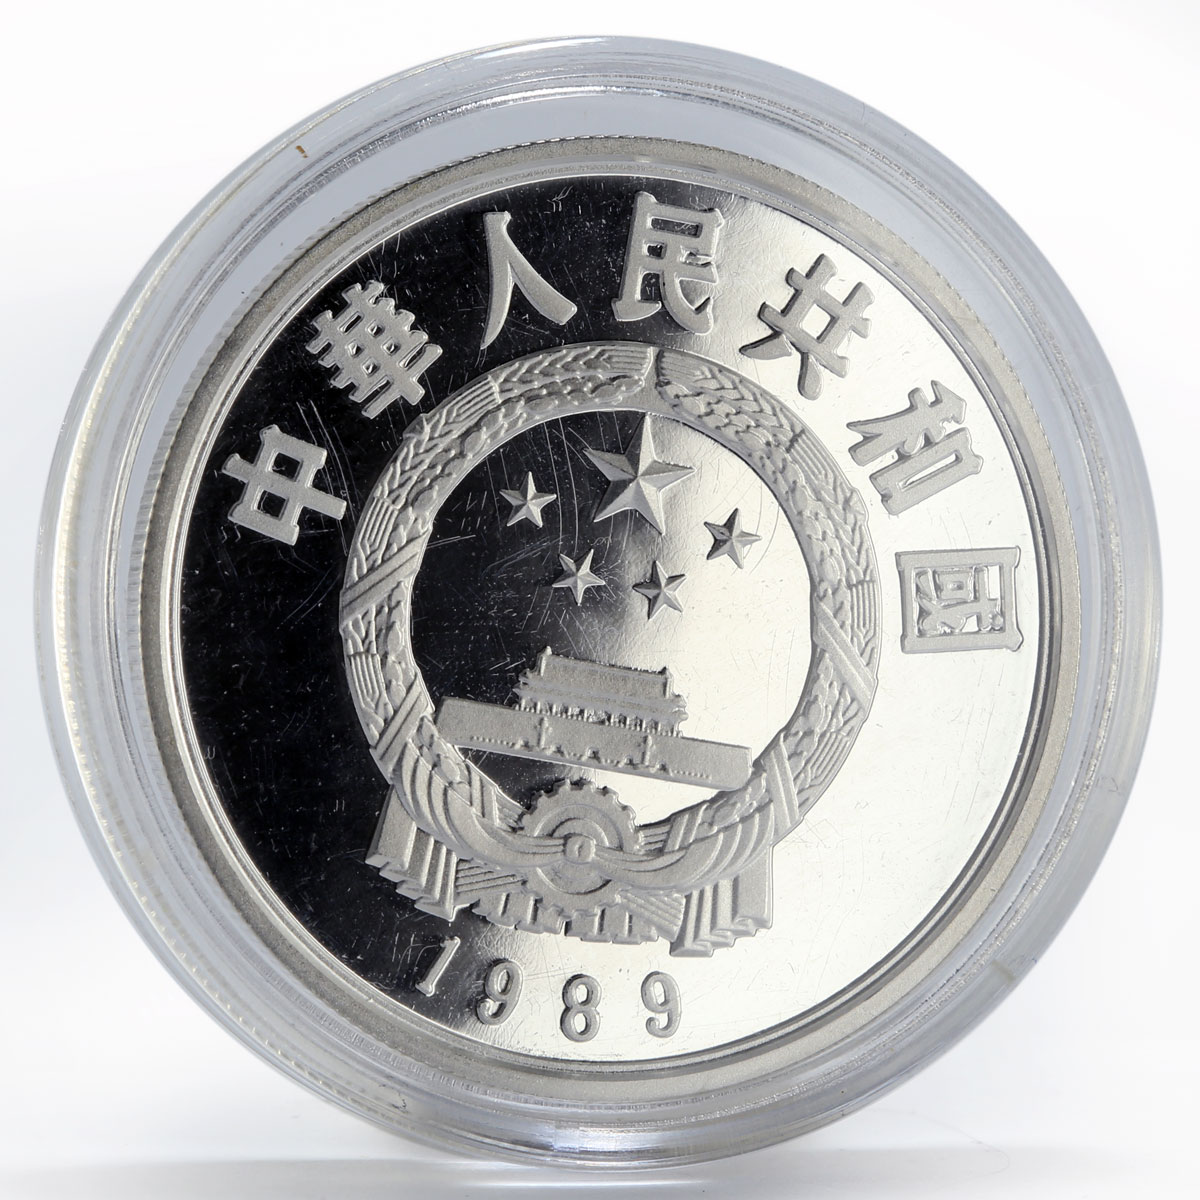 China 5 yuan Kublai Khan emperor proof silver coin 1989